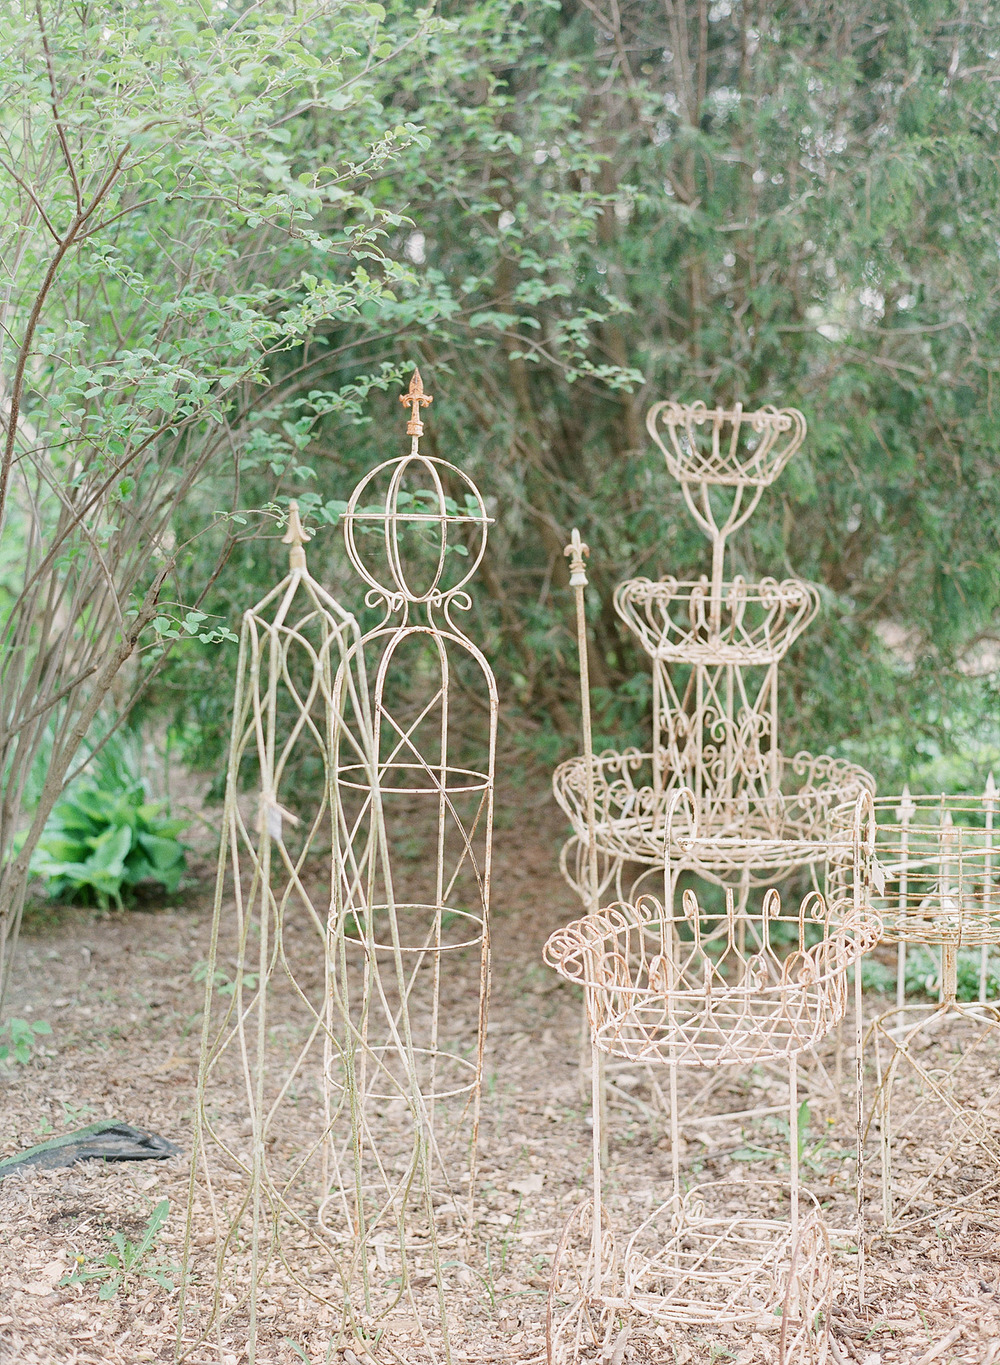 wrought iron garden items at this  springtime wedding at Northwind Perennial Garden - a beautiful wisconsin wedding venue - while Destination wedding photographer Lexia Frank Photographs this wedding on film